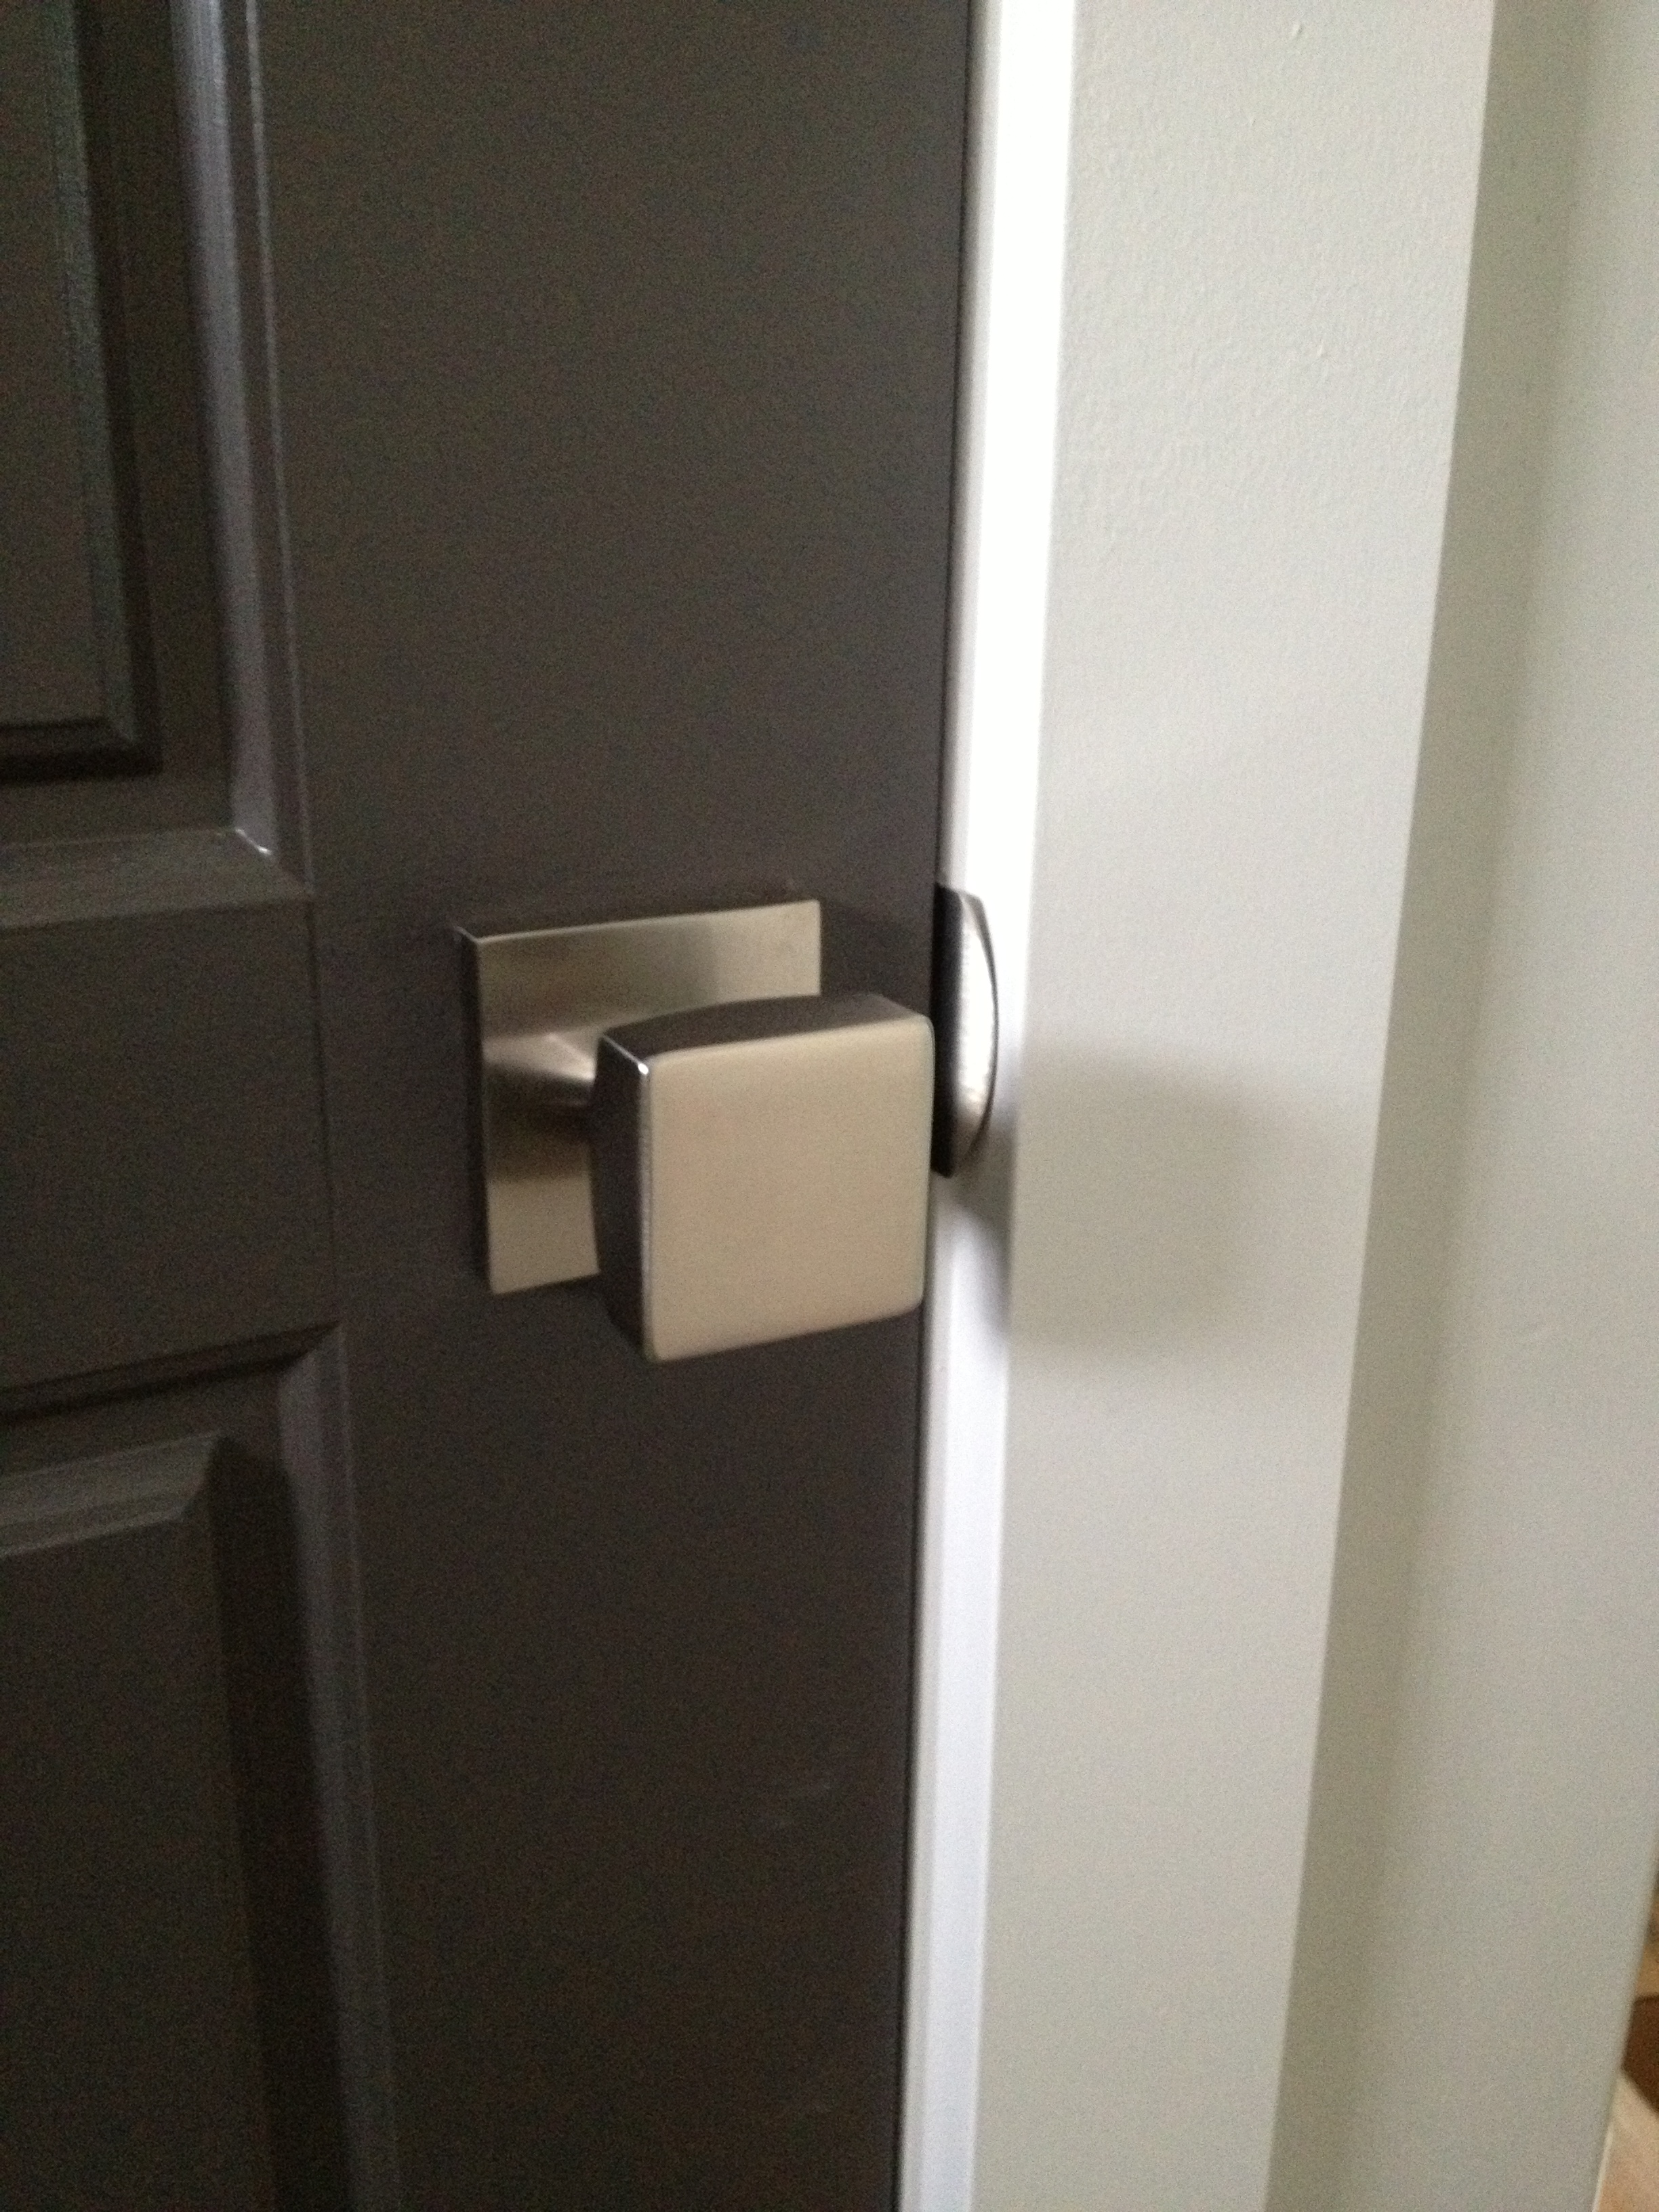 Installation Of Your Emtek Square Modern Door Knob With Square Rosette  Complete.